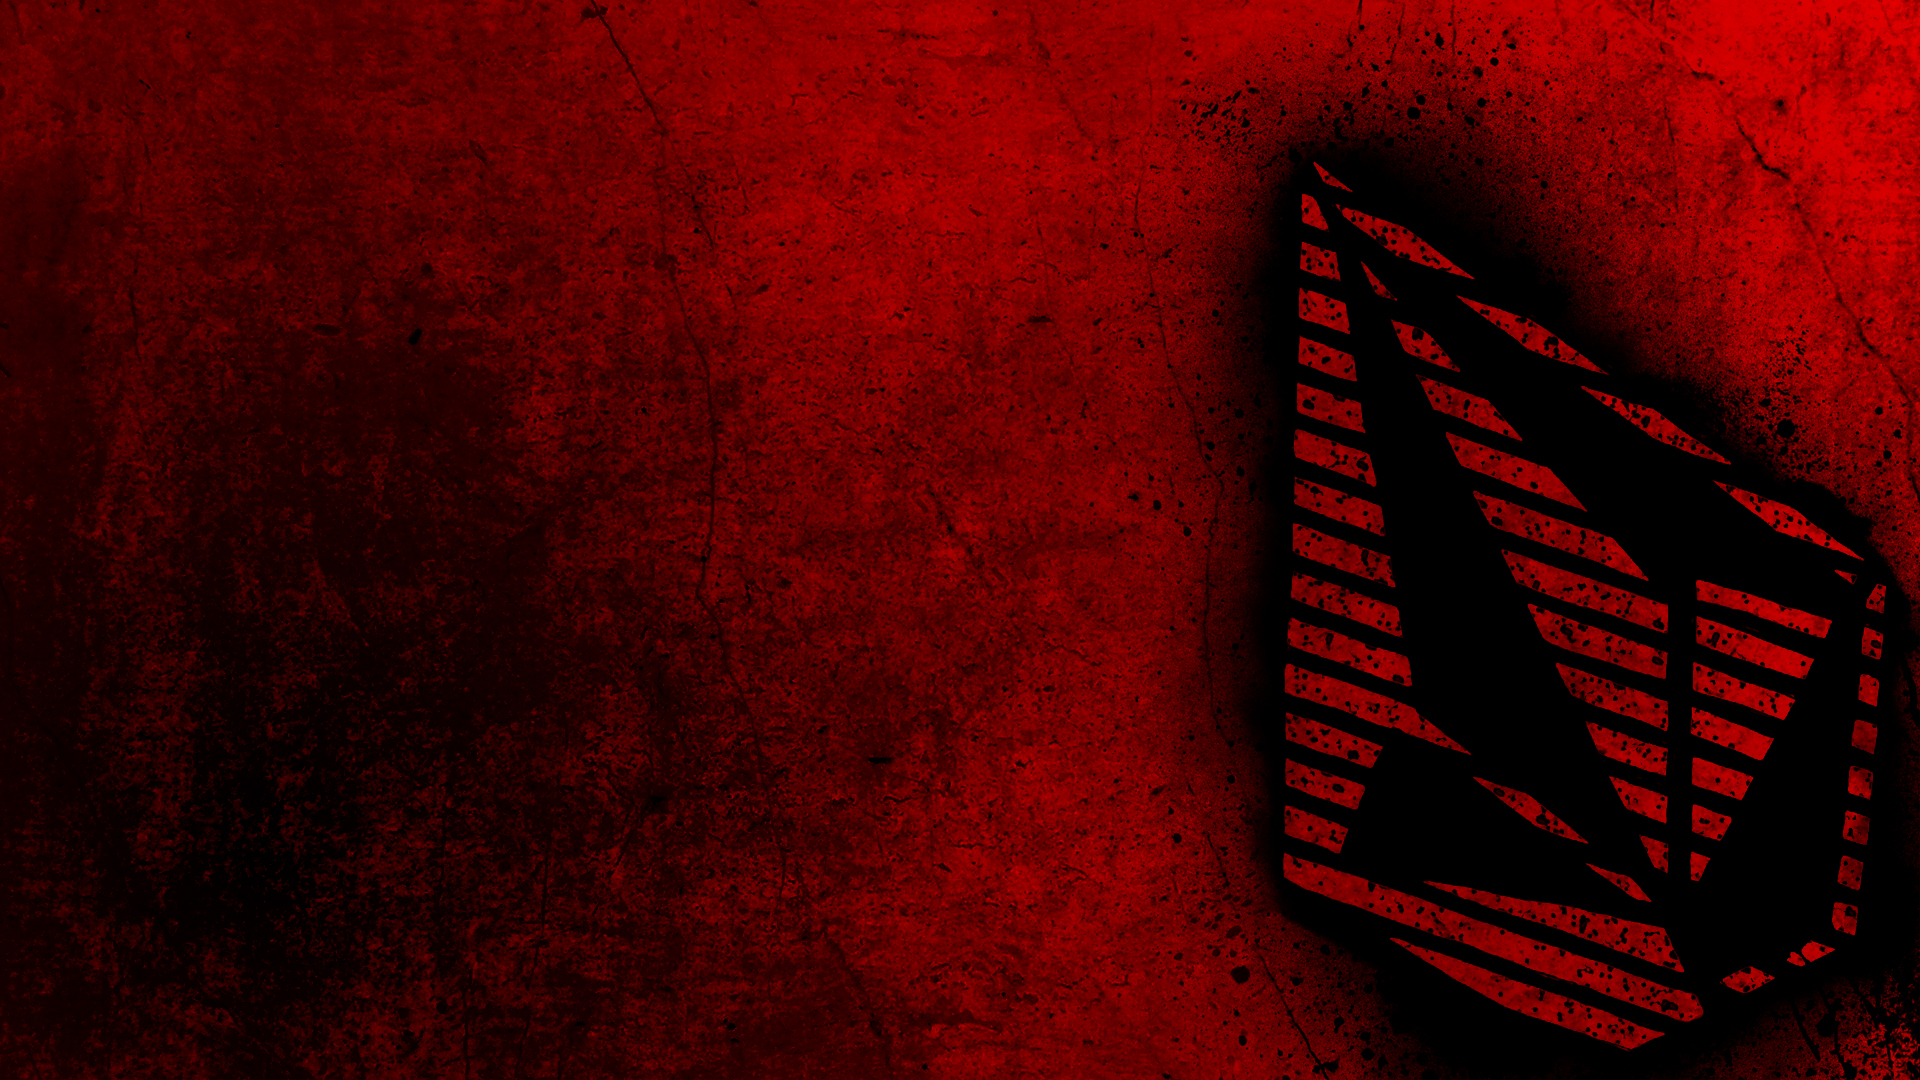 Red Volcom Graffiti Original Best HD Wallpaper Image Background